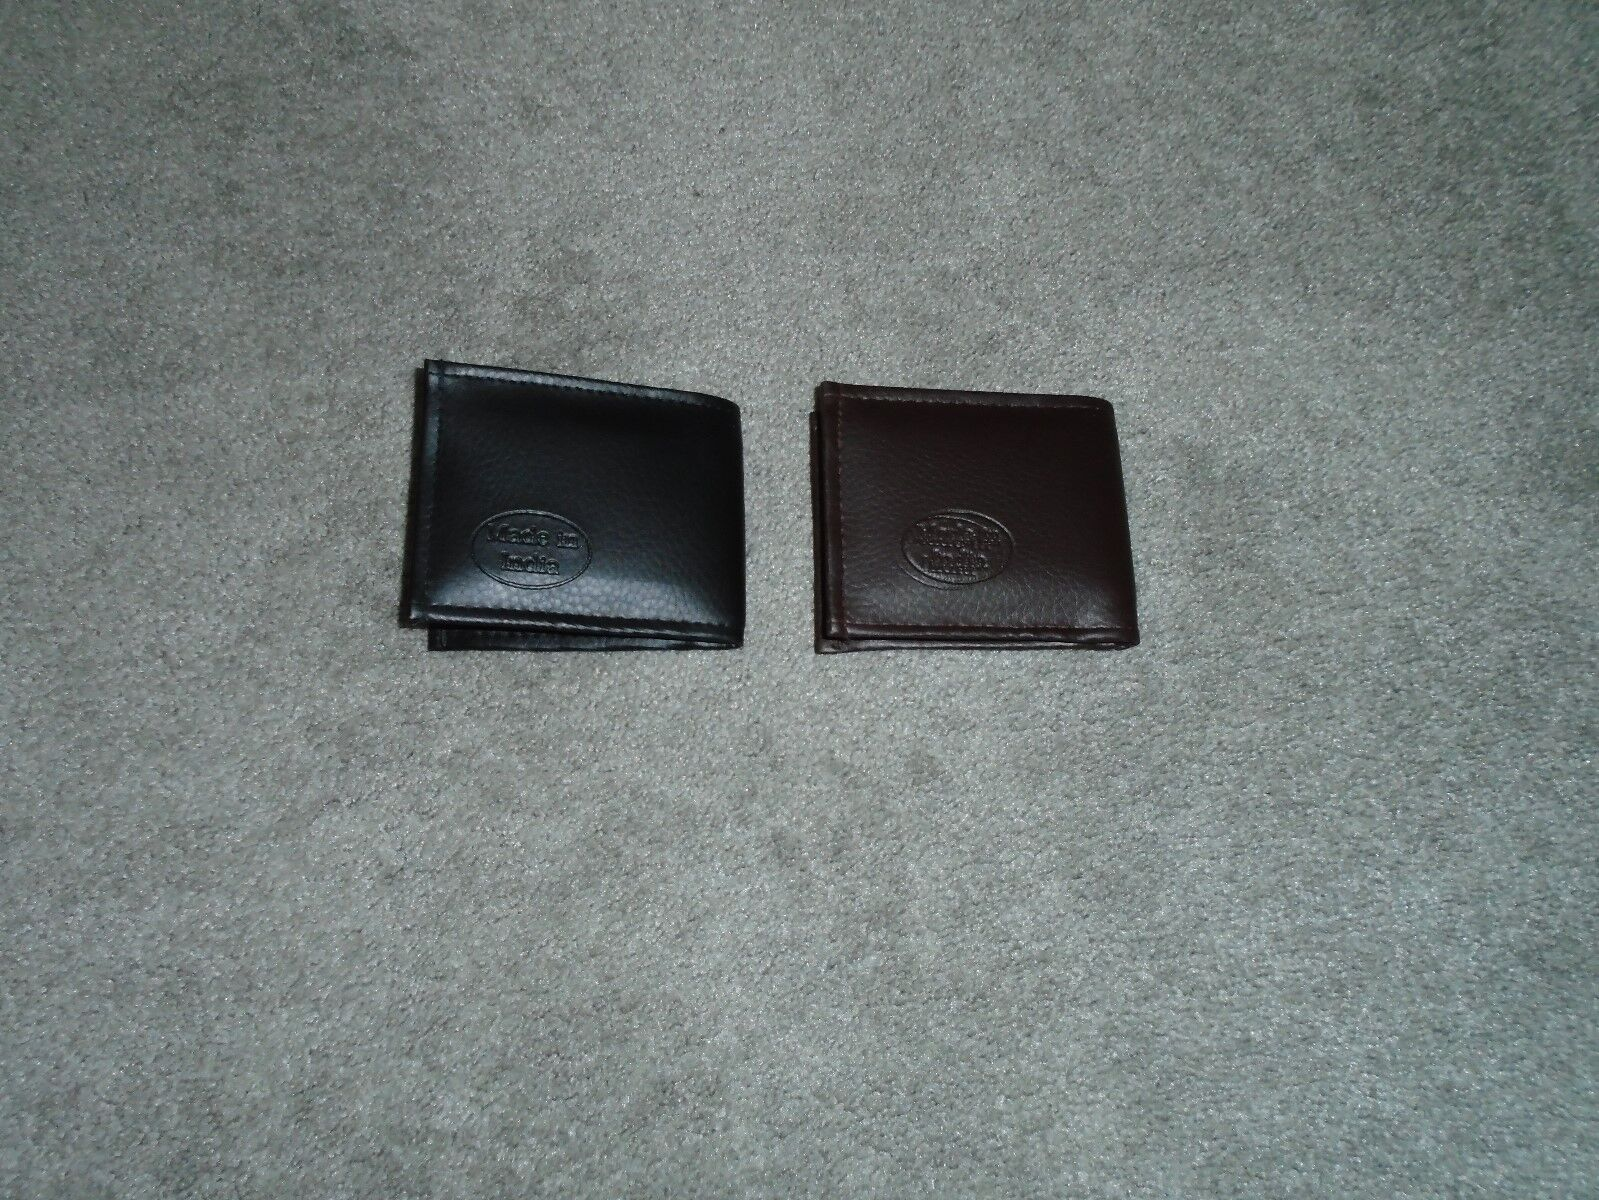 2 Men's Wallets Black & Brown Made In India New